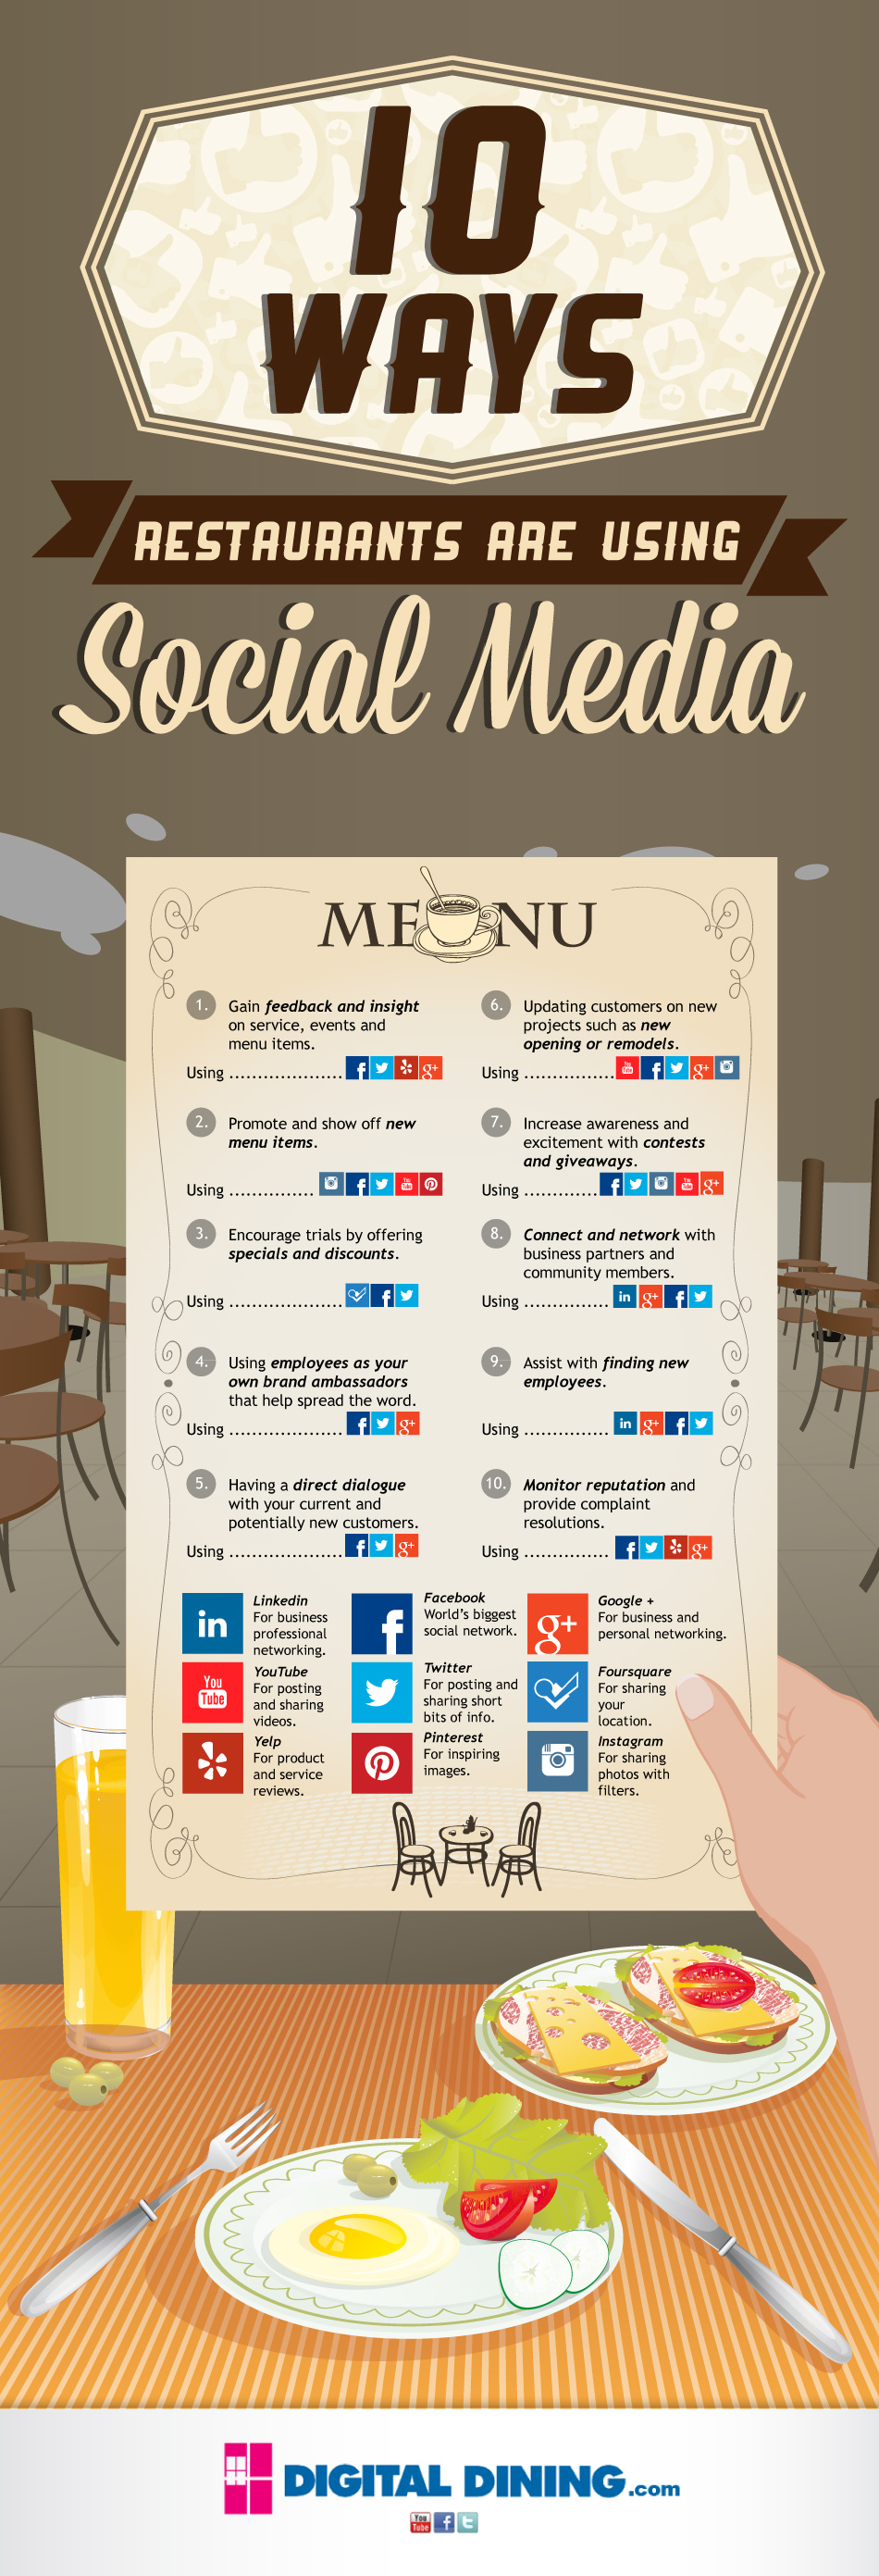 cdg leisure boost your restaurant through the use of social media